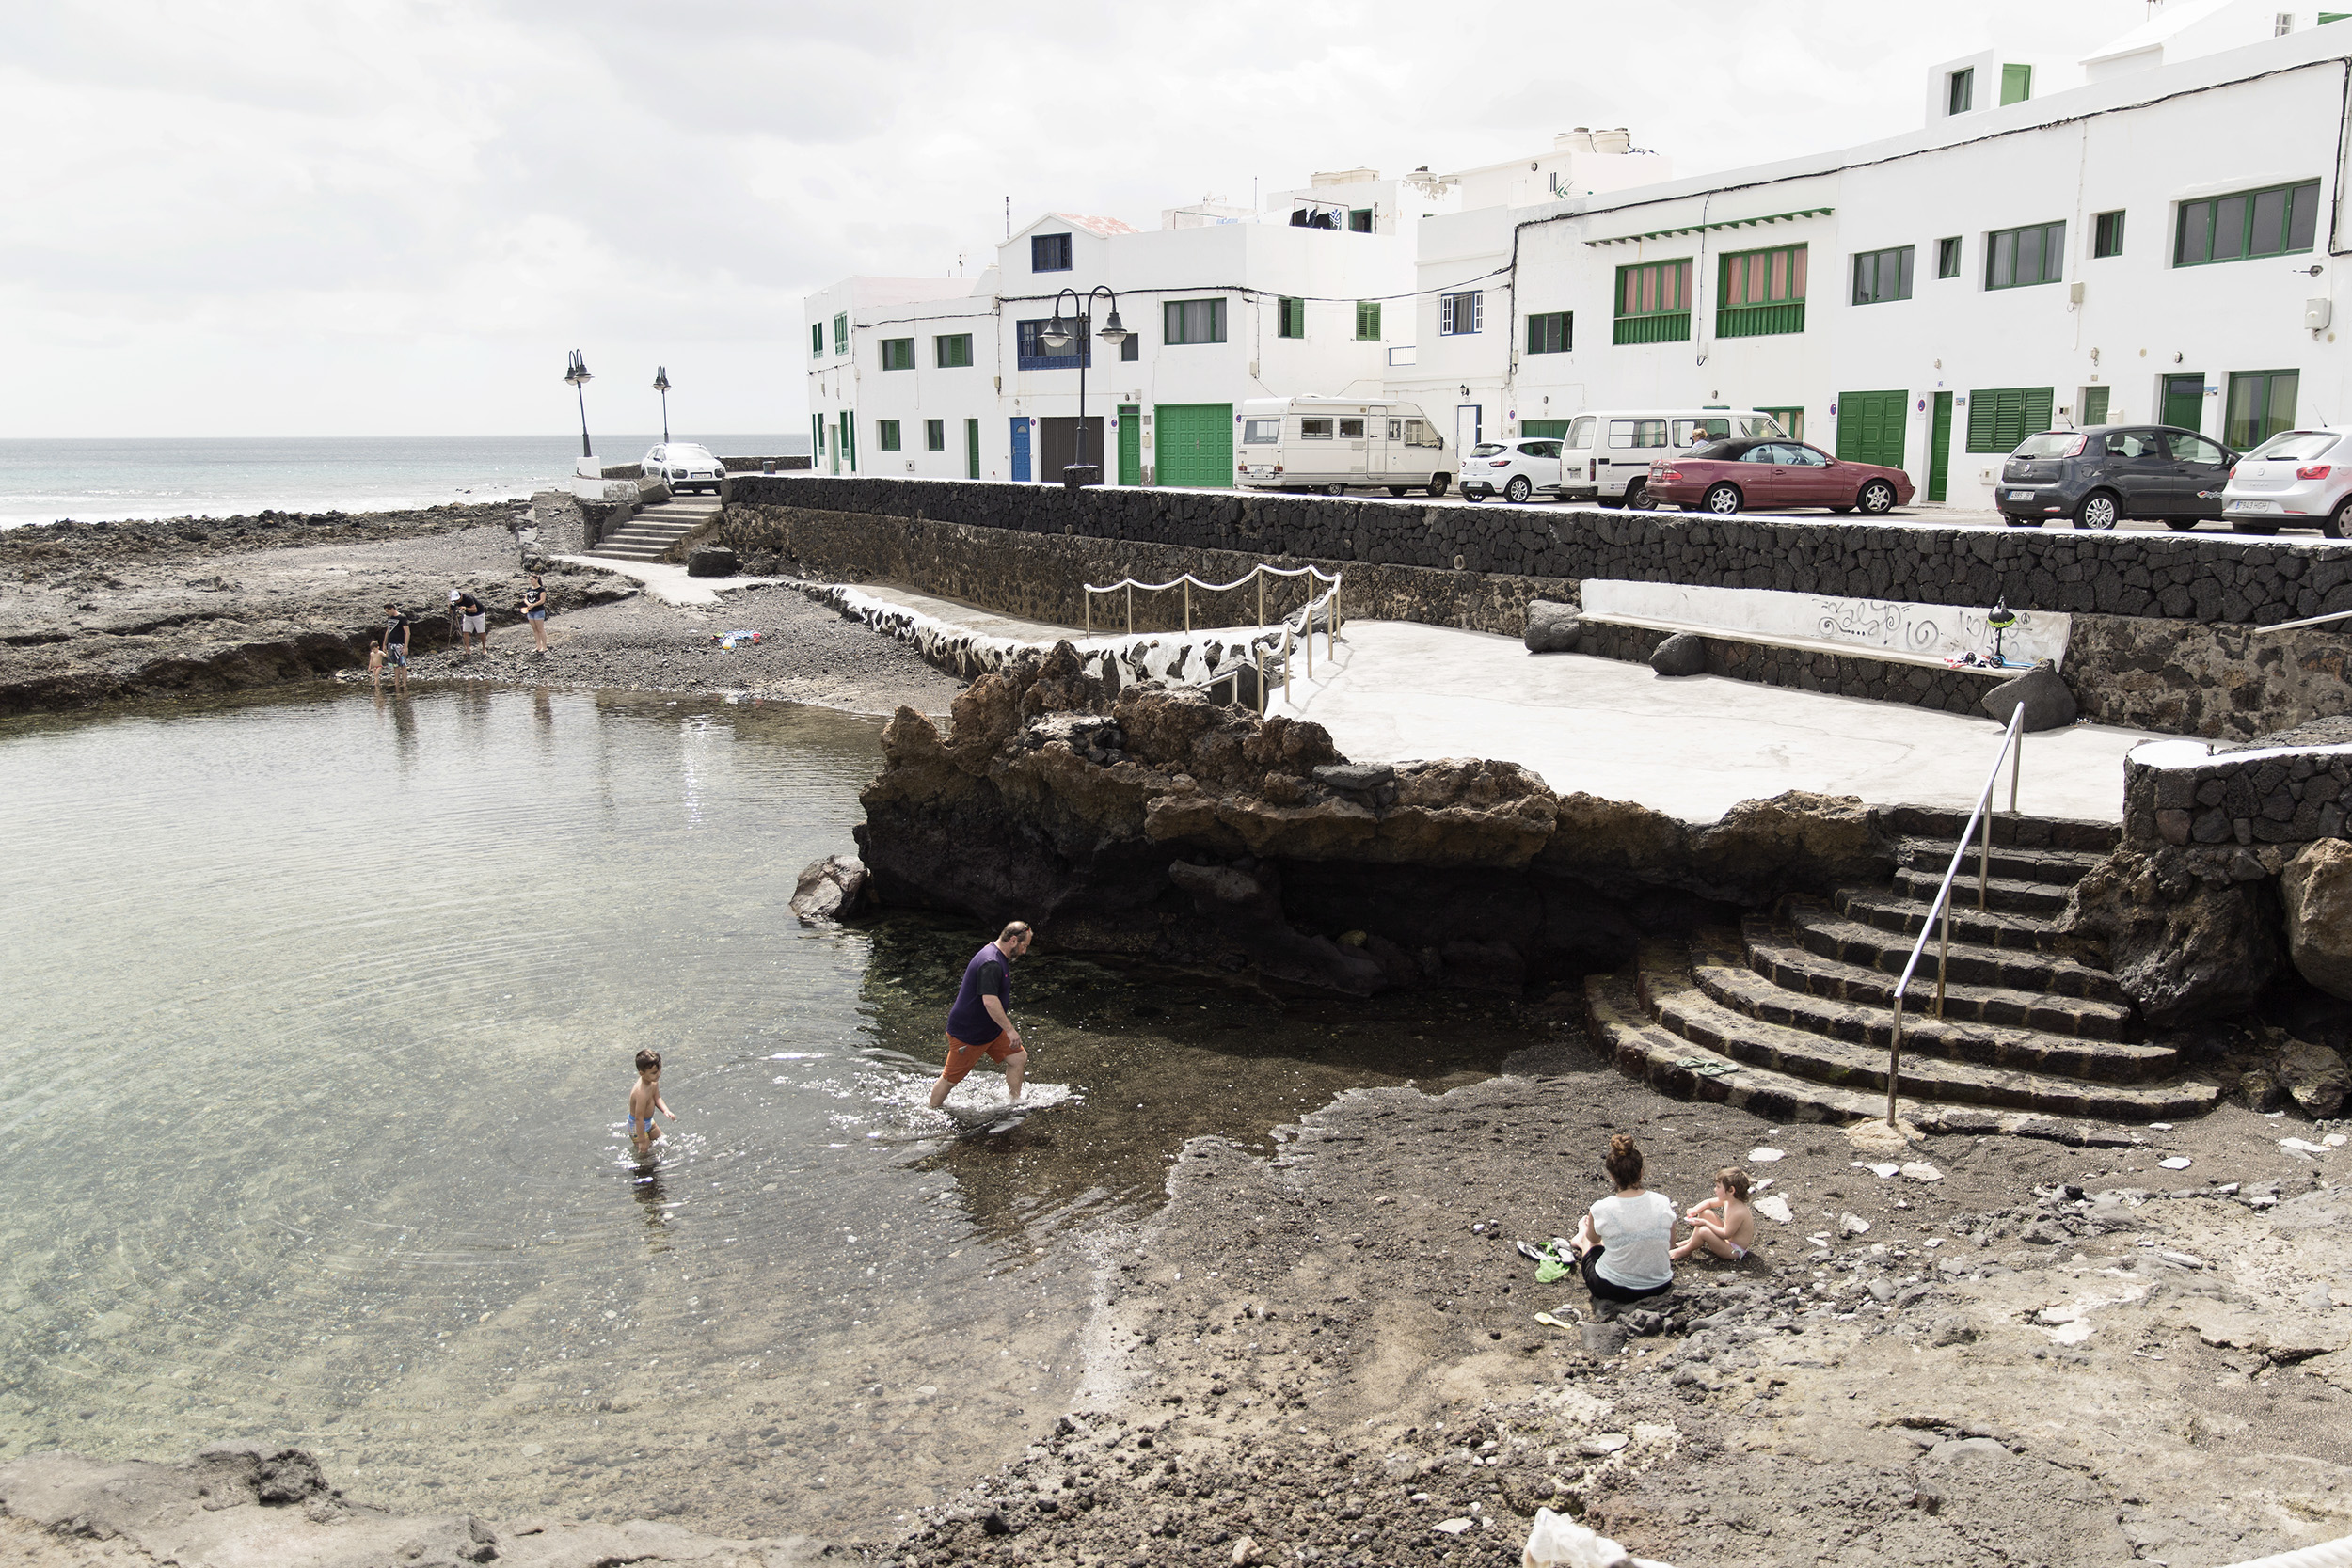 A coastal town in the Canary Islands by Rebecca Stumpf, Denver Boulder Colorado Editorial and Commercial Photographer.